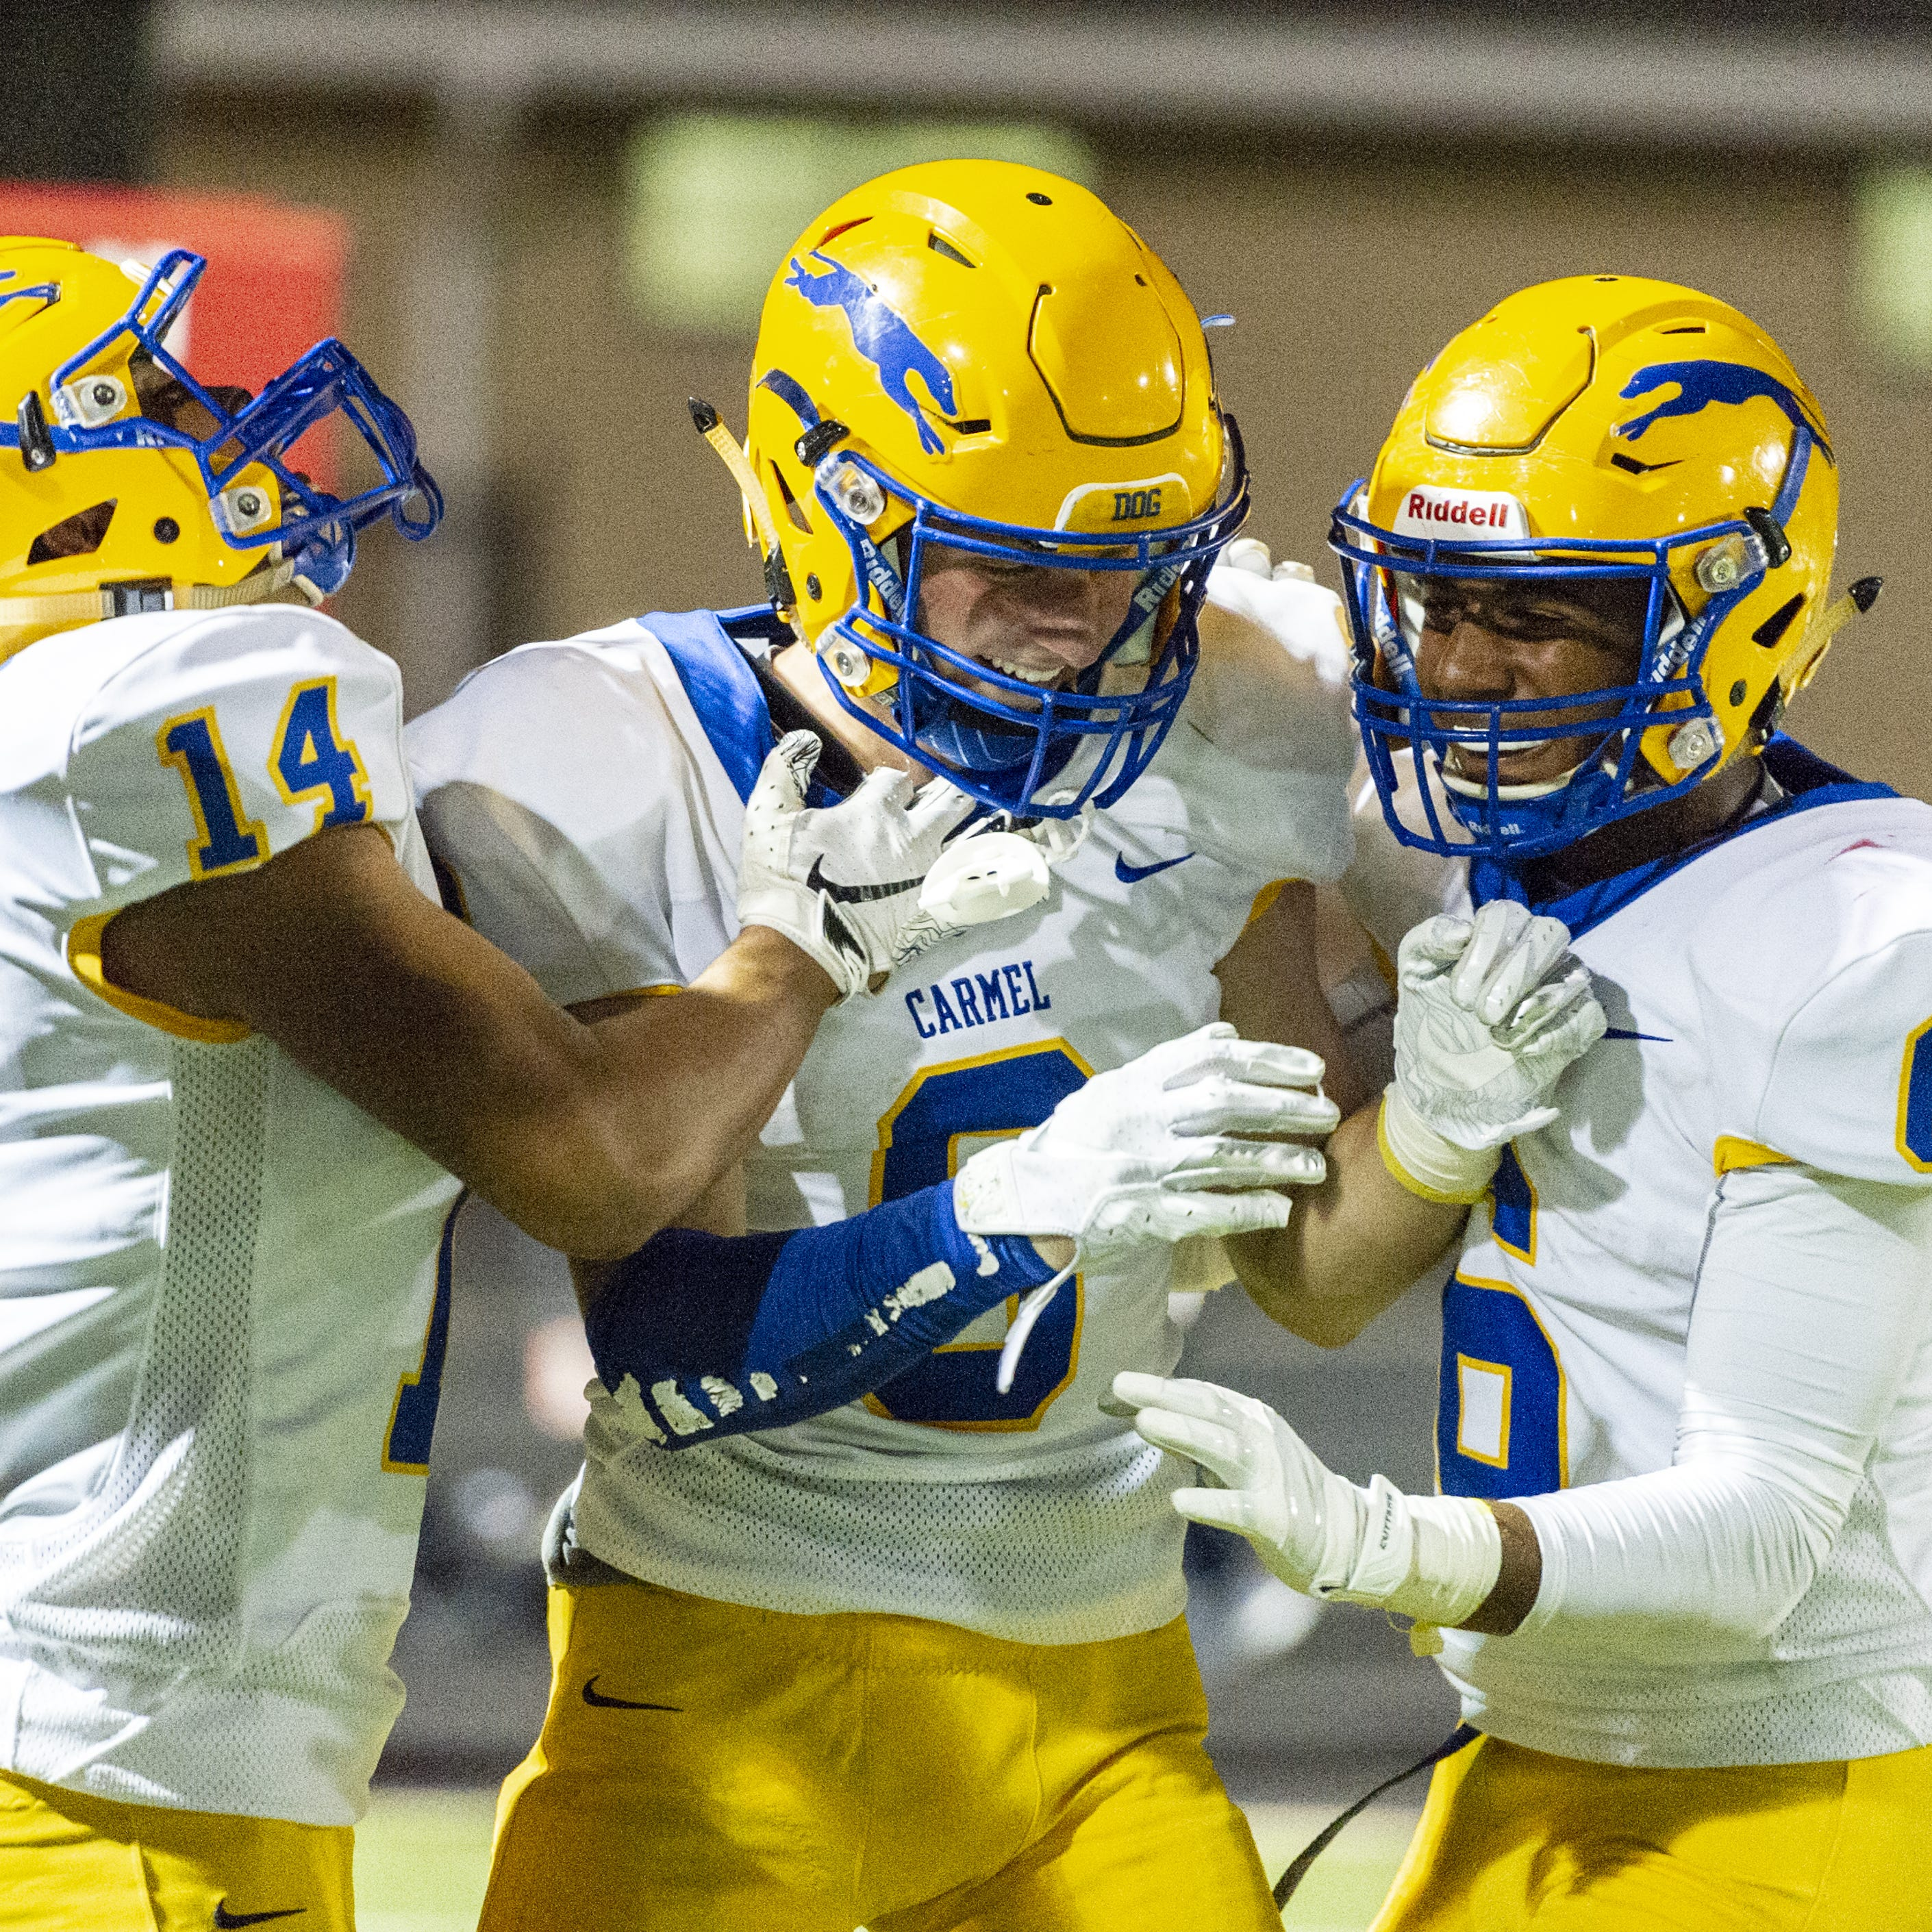 Carmel High School senior Sam Rogers (8) celebrates a touchdown in the third overtime period. North Central High School hosted Carmel High School in IHSAA varsity football action, Friday, Sept. 21, 2018. Carmel won 41-40 in three overtime periods.